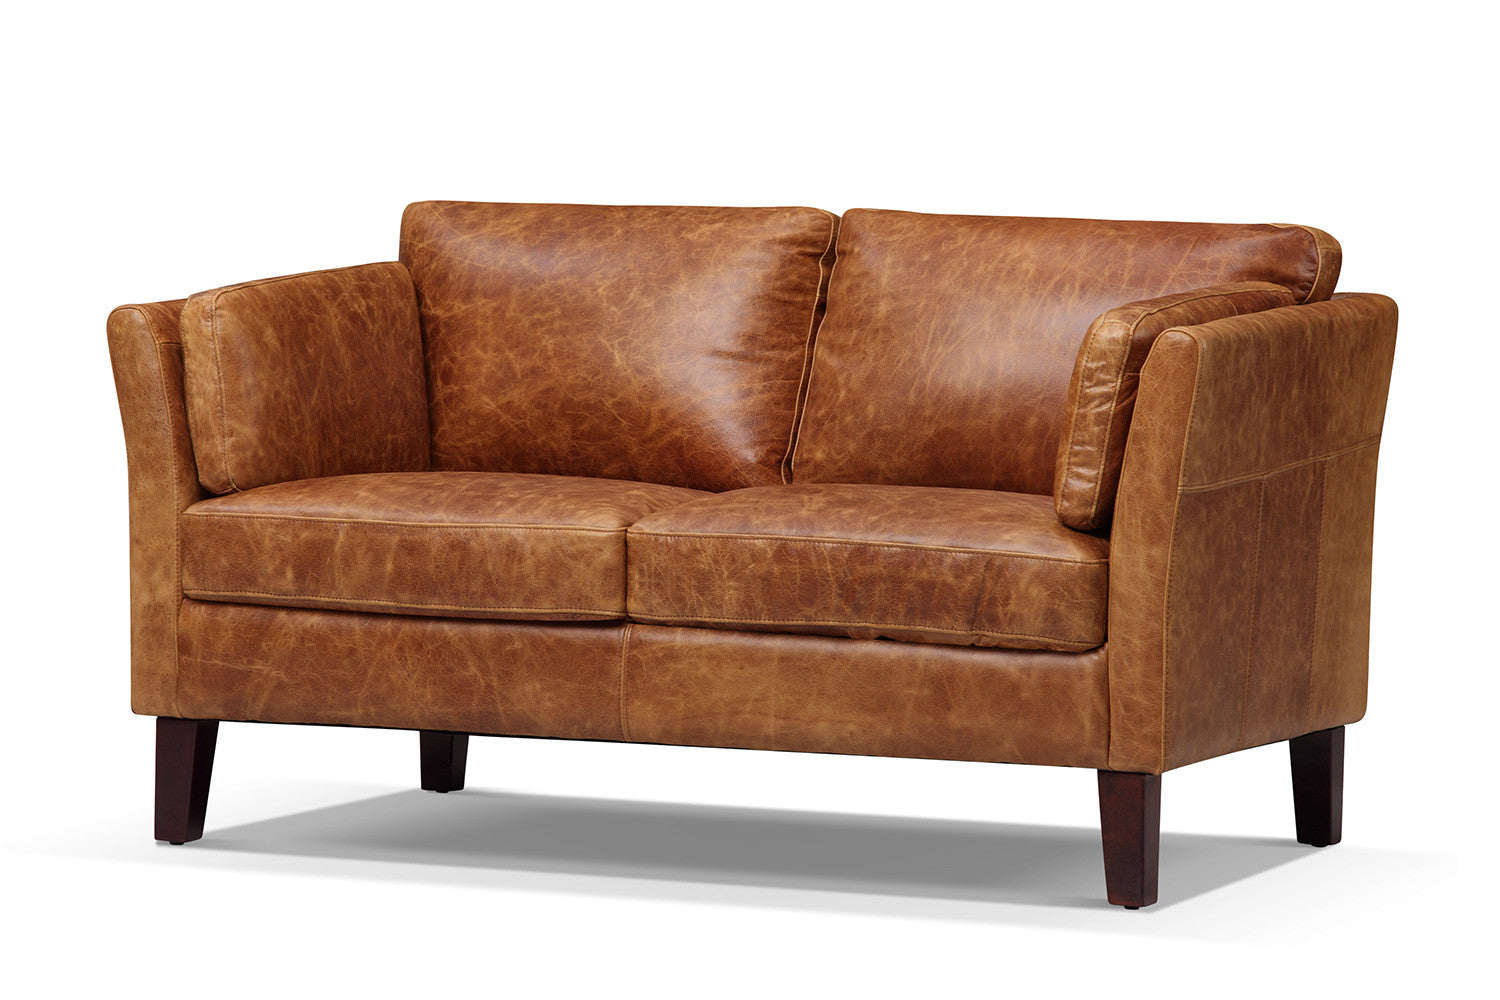 The Vintage 1960 Scandinavian Leather Loveseat Rose And Moore ~ Sofa And Loveseat Leather